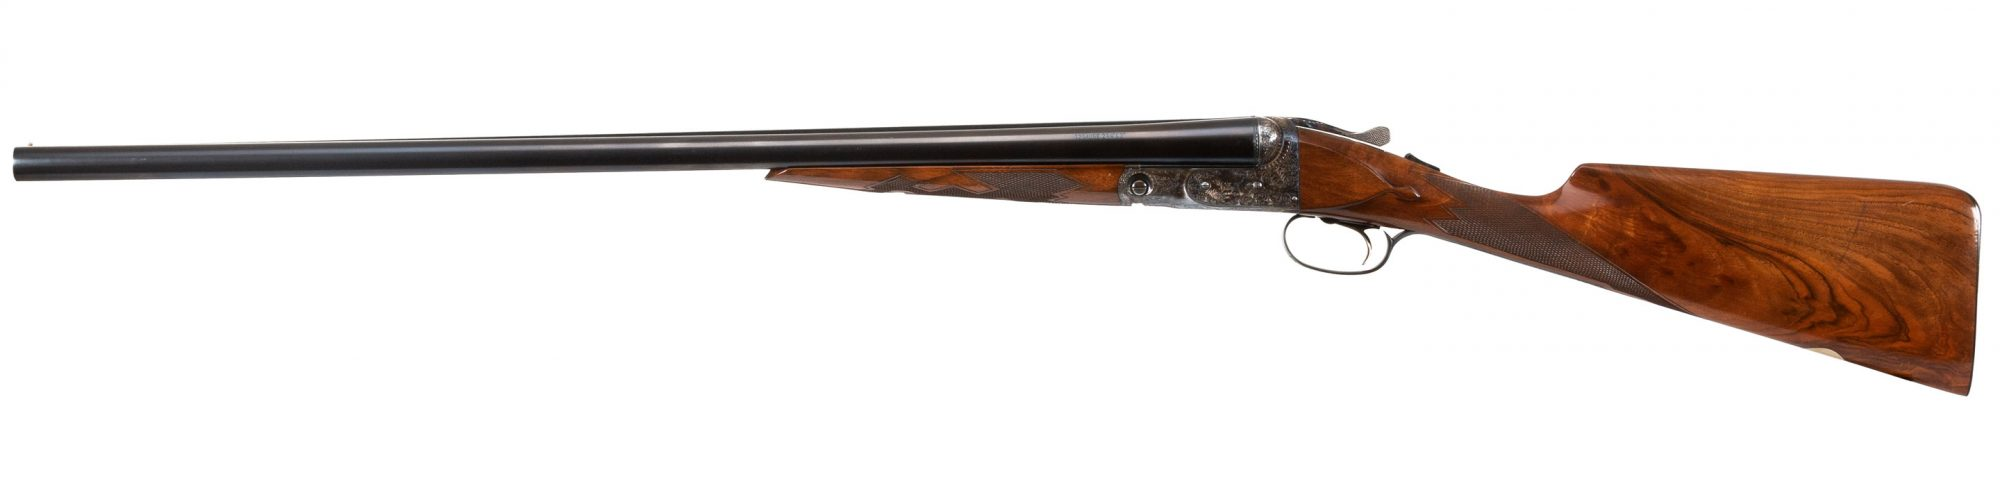 Photo of a pre-owned Parker Reproduction 12 Gauge DHE Steel Shot Special, for sale by Turnbull Restoration in Bloomfield, NY